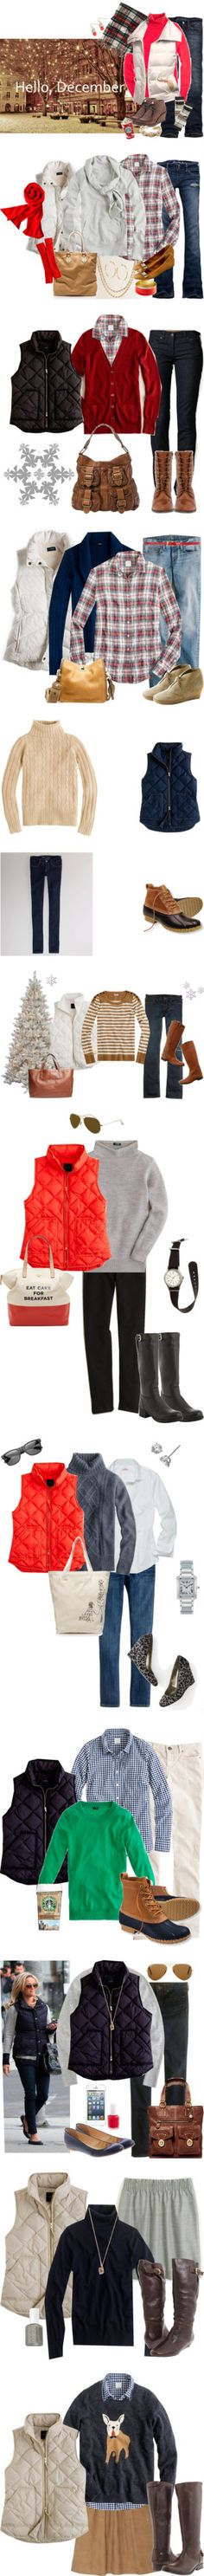 """""""Quilted vest"""" by redrobin21 ❤ liked on Polyvore"""